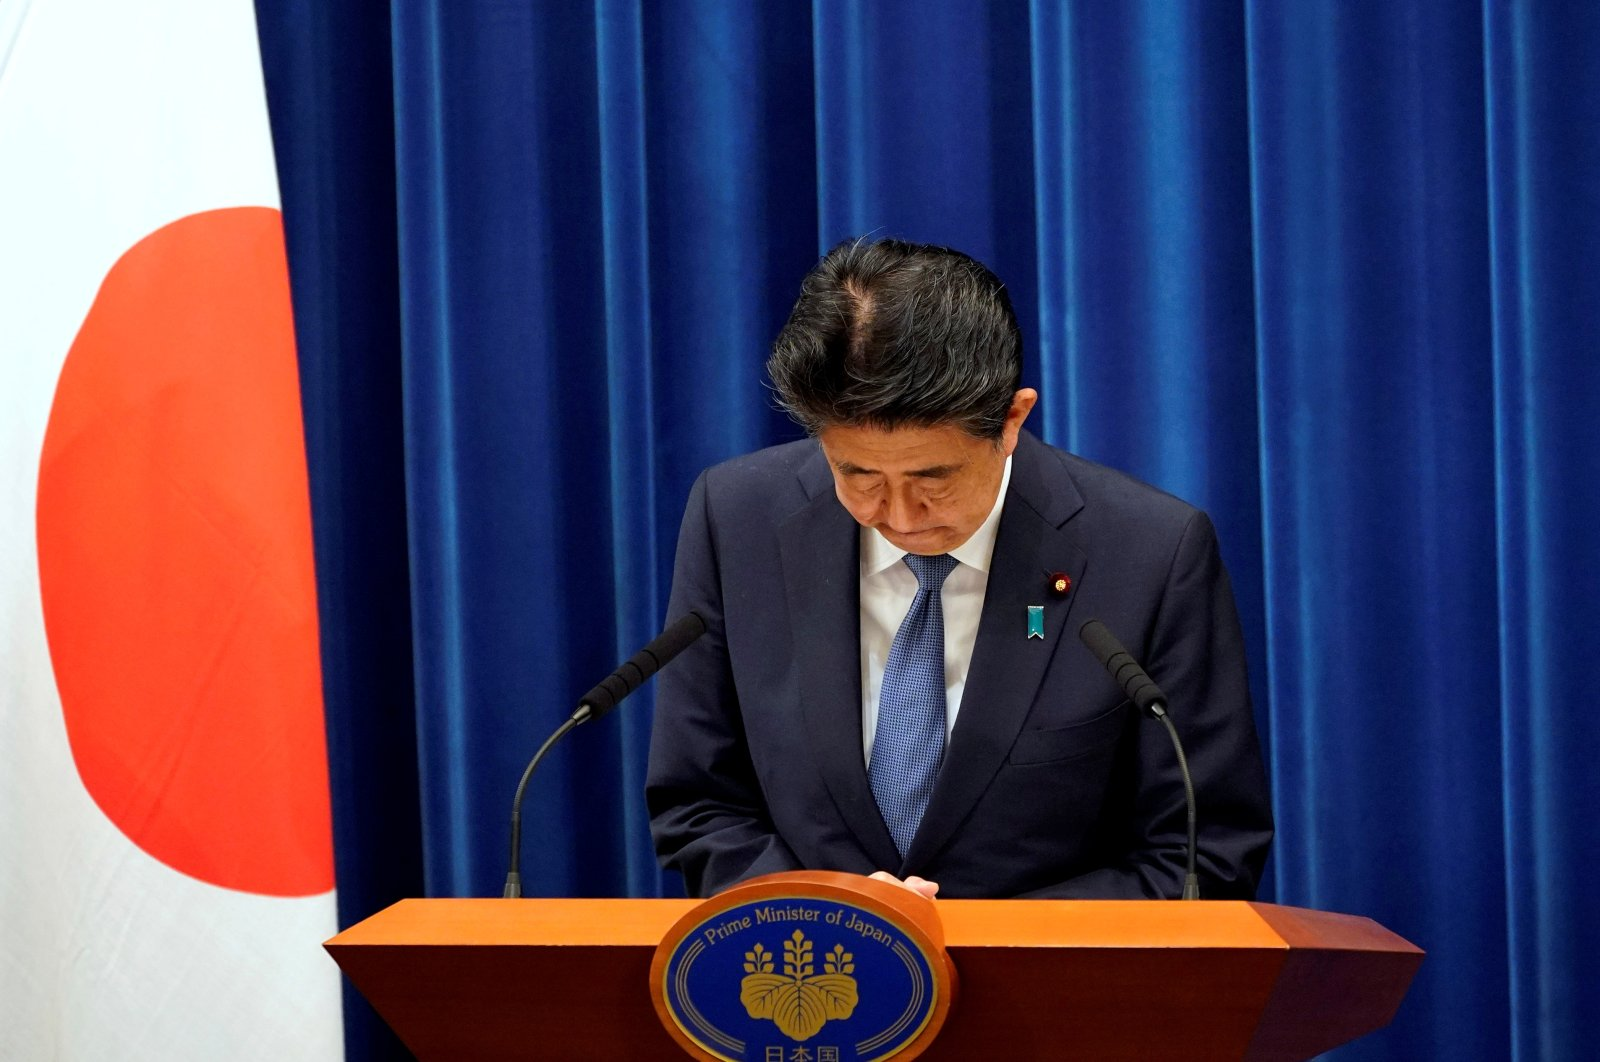 Japanese Prime Minister Shinzo Abe bows during a news conference at the prime minister's official residence, Tokyo, Aug. 28, 2020. (REUTERS Photo)